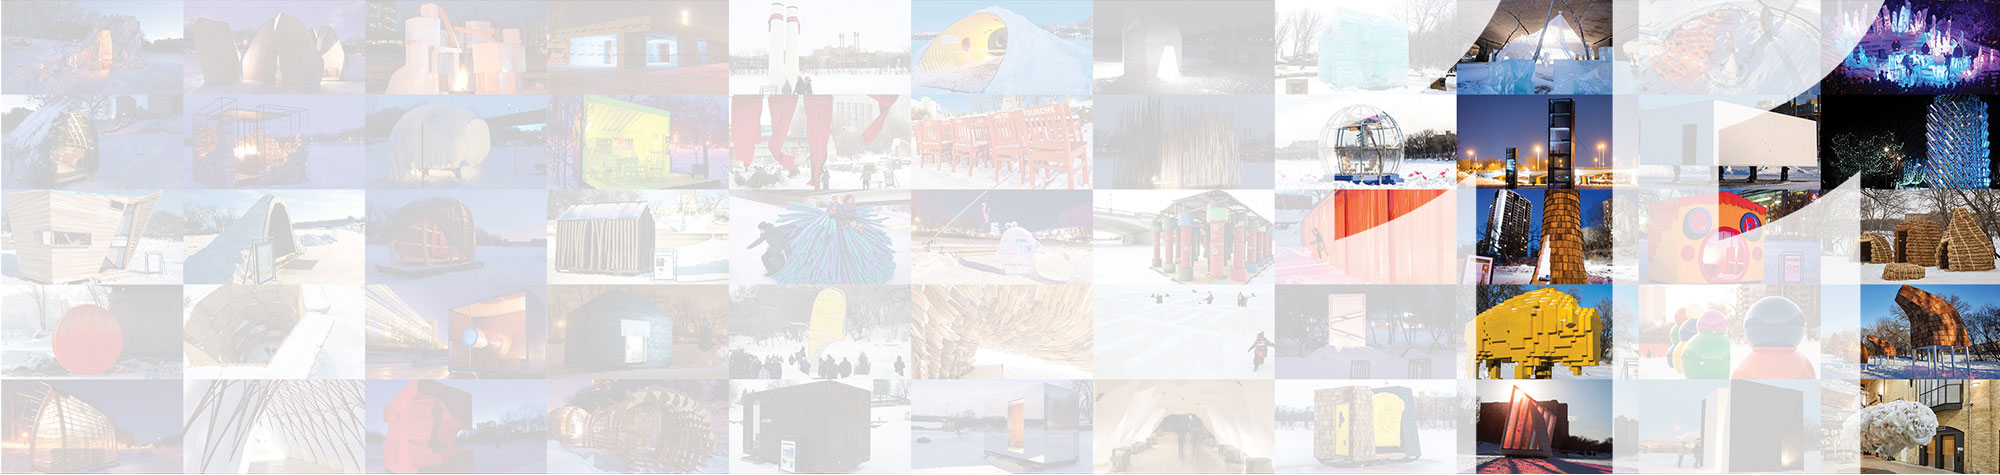 an arts + architecture competition on ice - WARMING HUTS v.2021